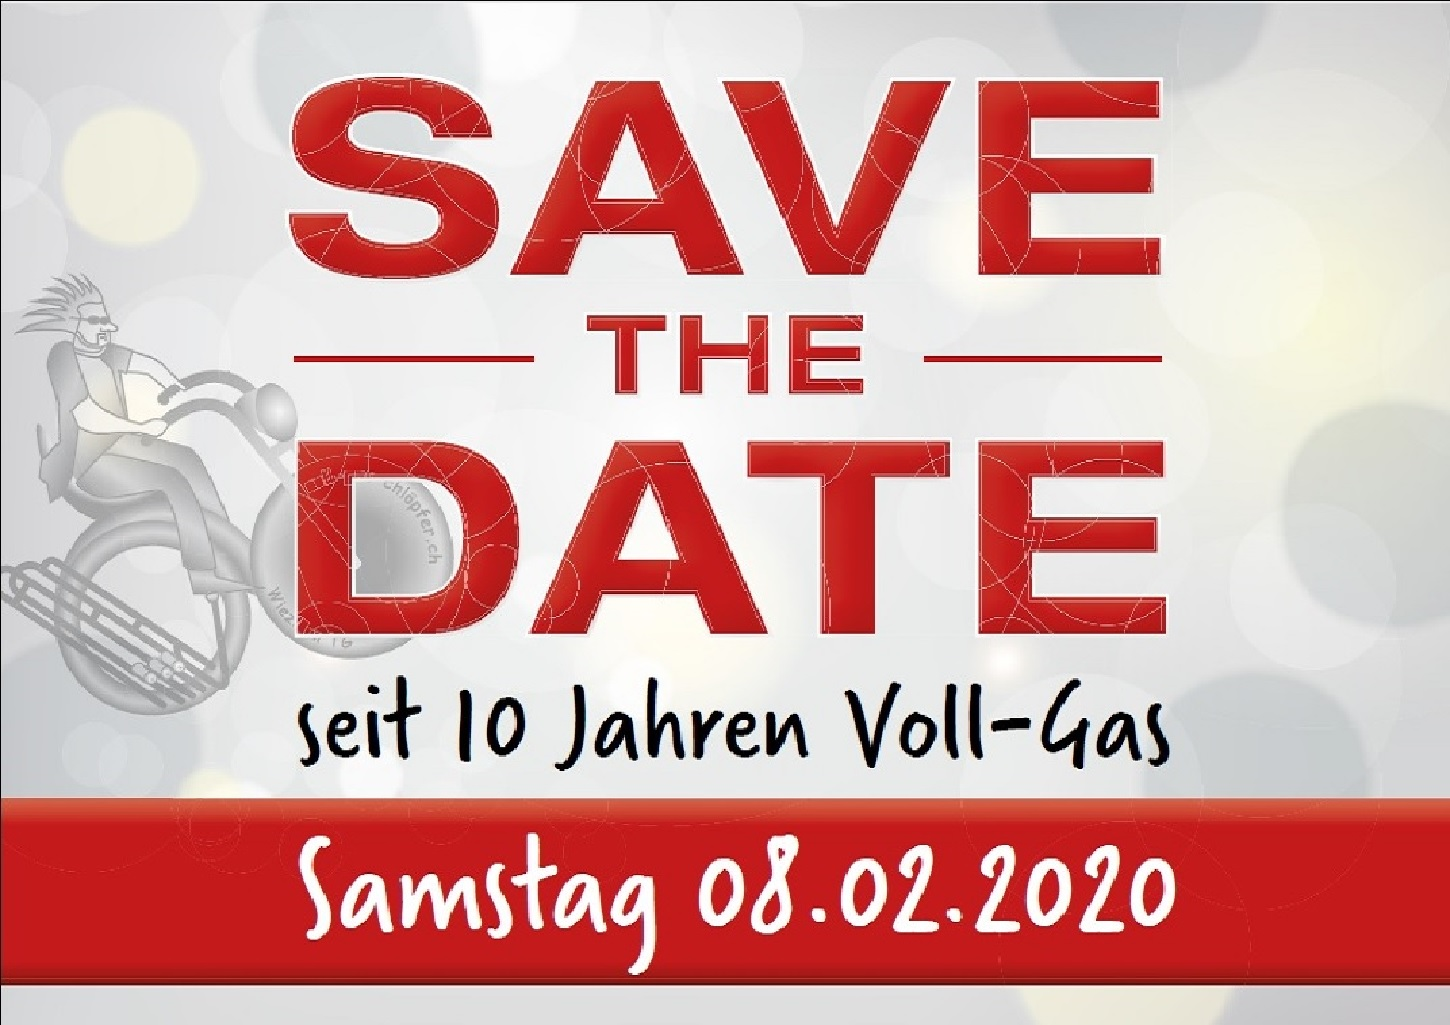 save the date voll